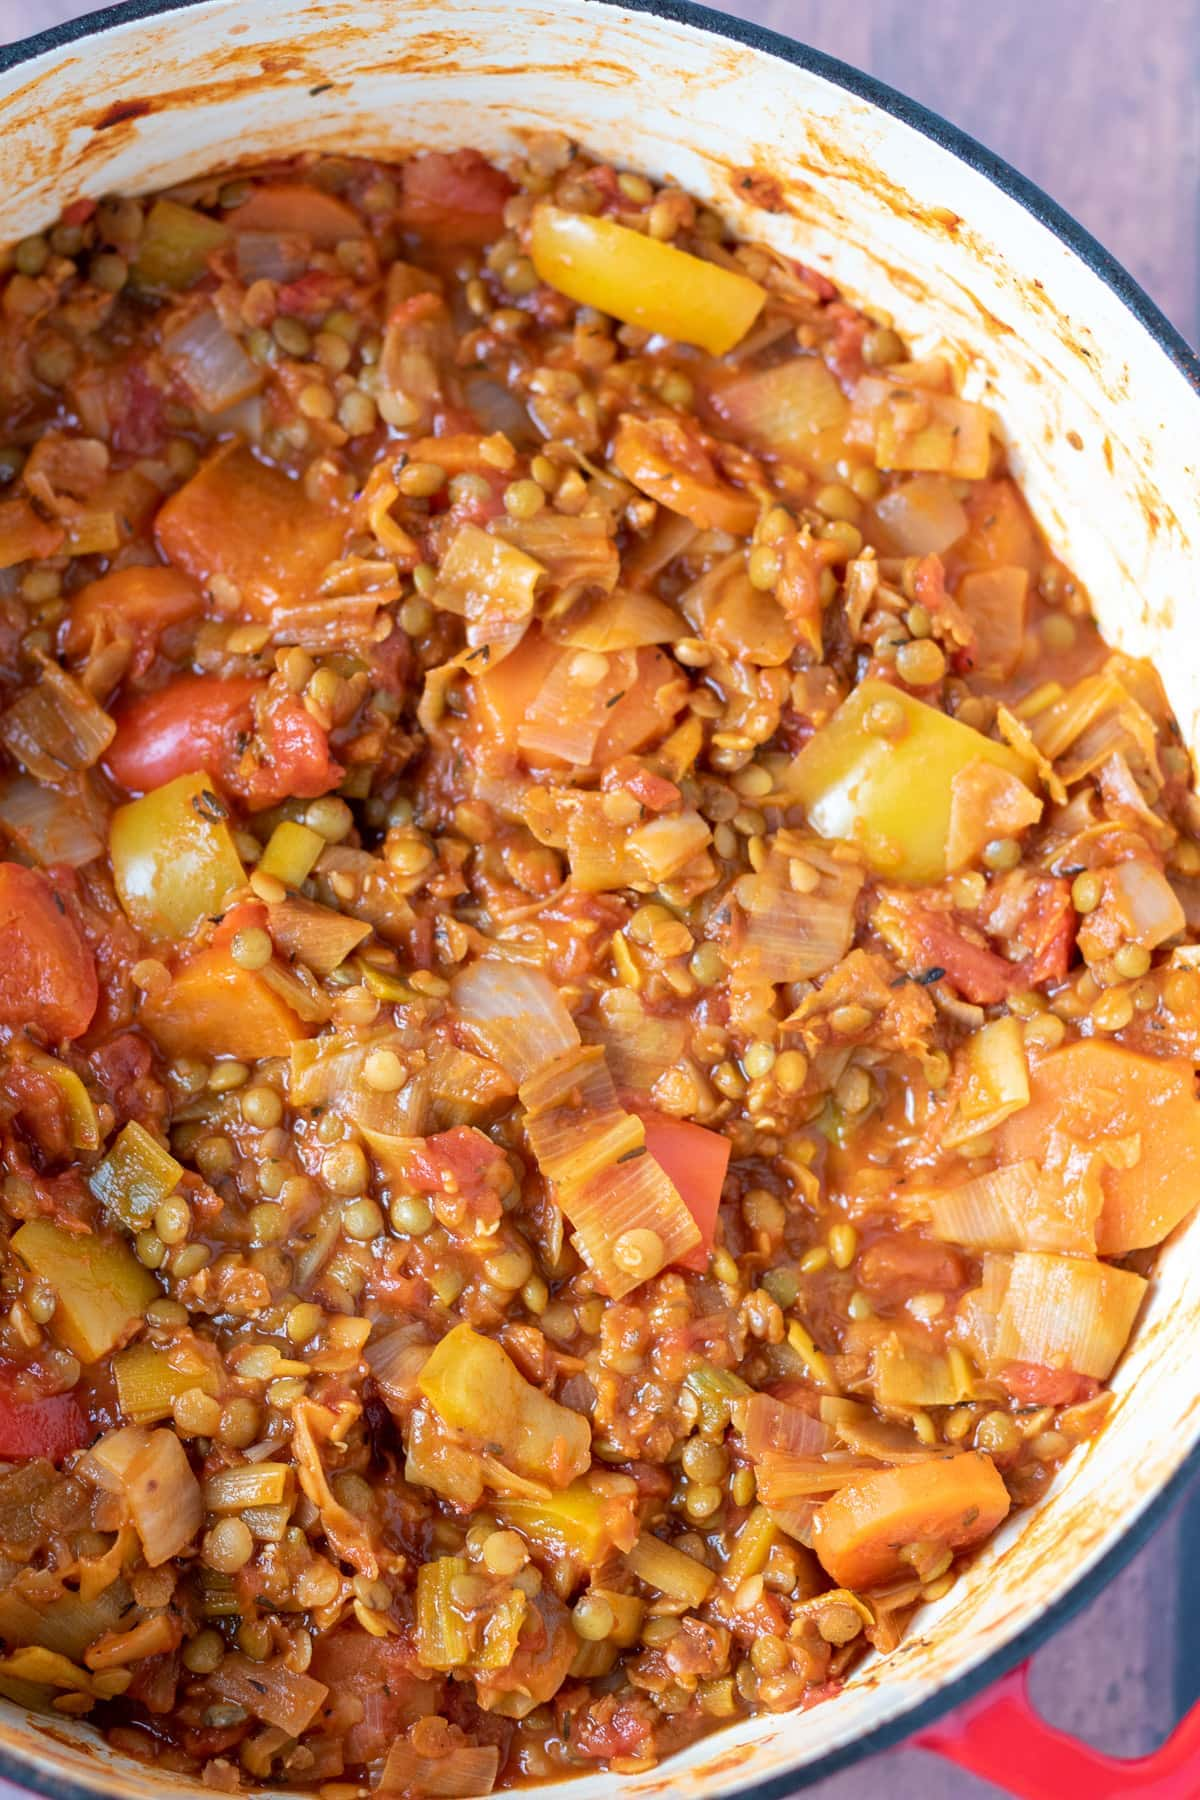 Birds eye view of a large casserole pot of cooked winter vegetable stew.